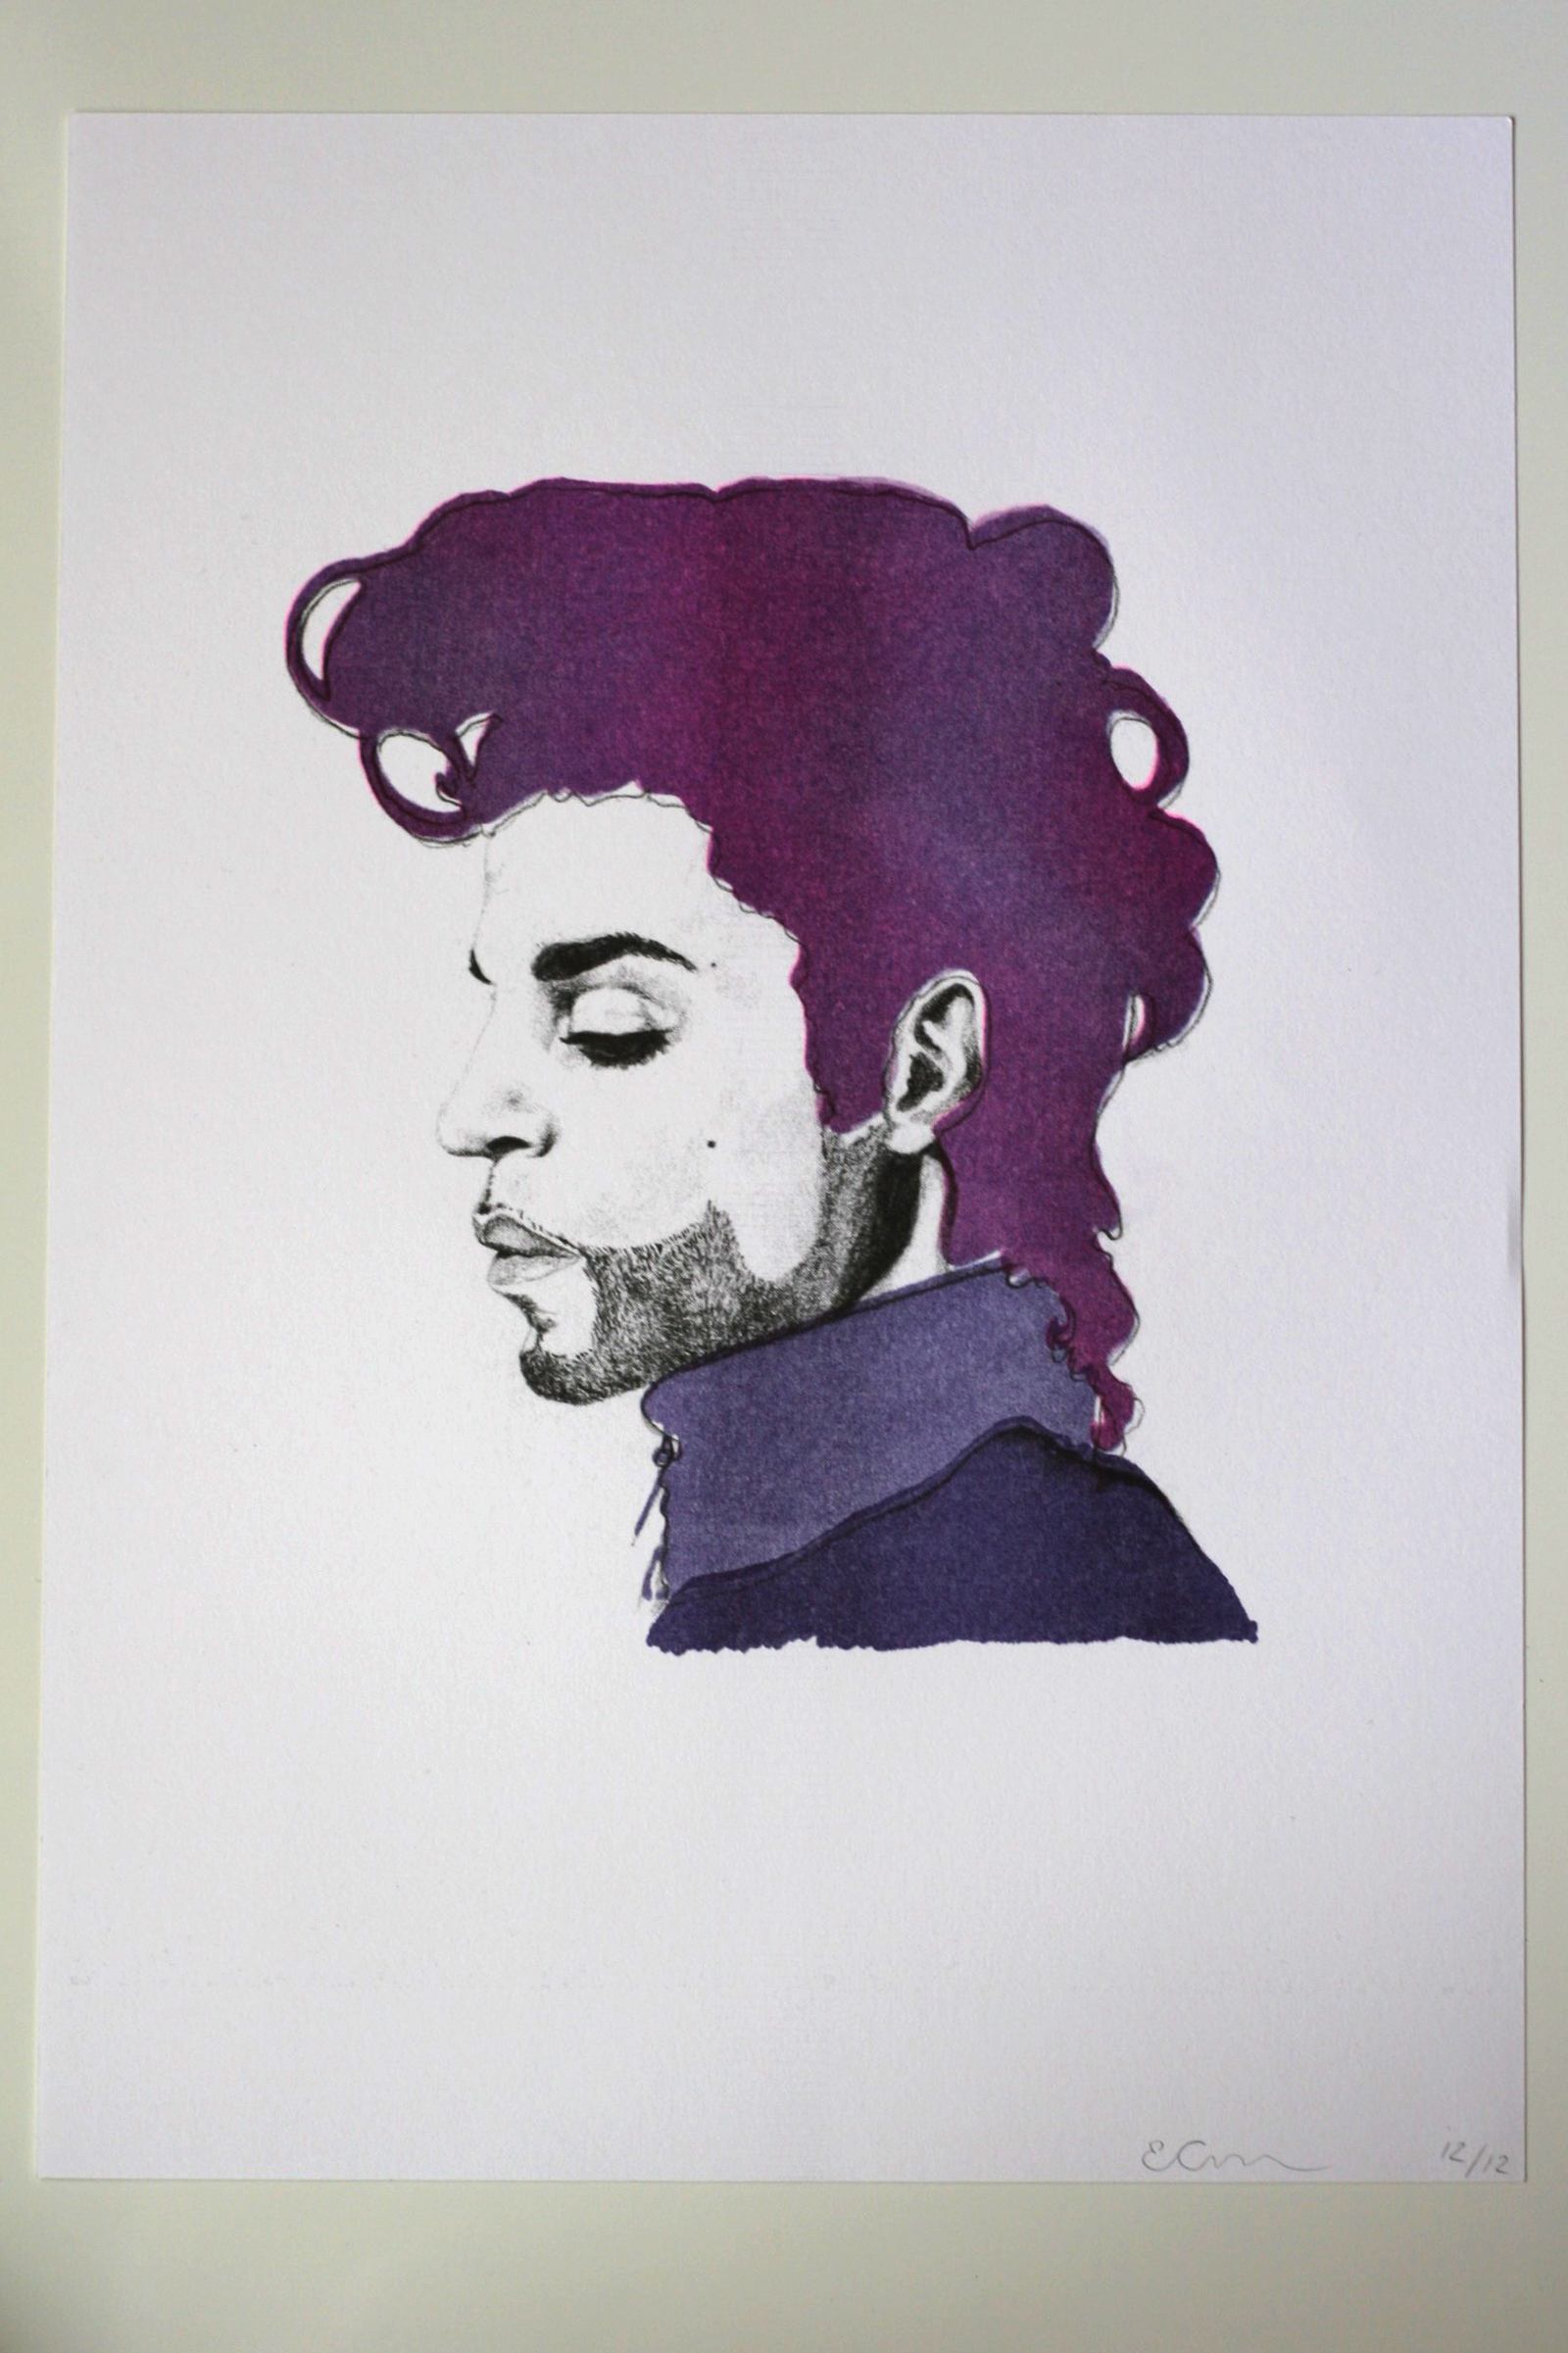 Prince Print is £15 and all proceeds go to the Jazz Foundation of America. Limited Edition of twelve.